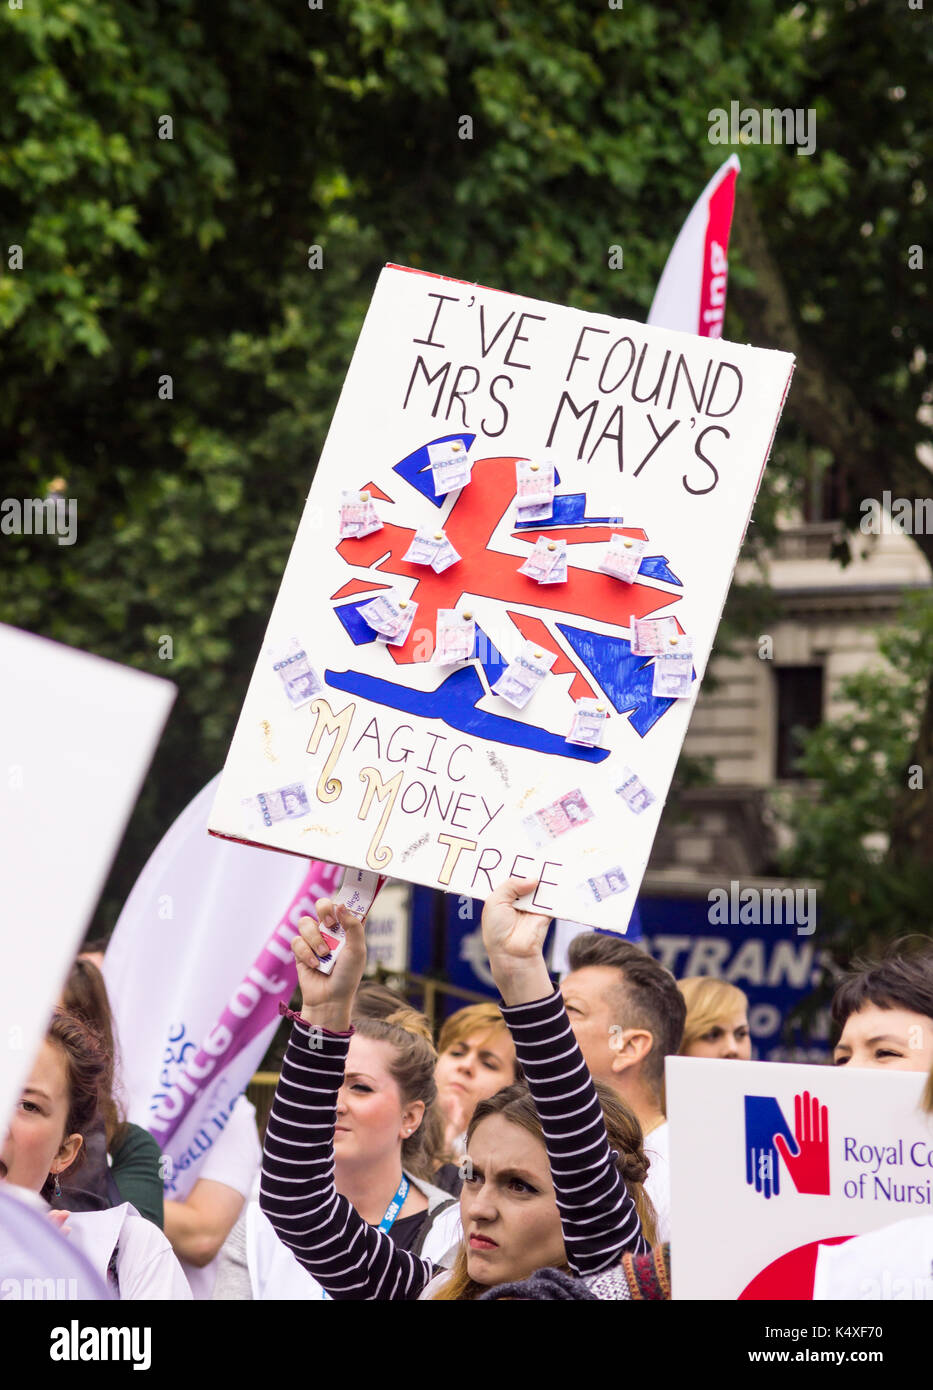 London, UK, 6 September 2017  Thousands of nurses, members of the public and other healthcare workers from all over the U.K. gathered in Parliament Sq - Stock Image